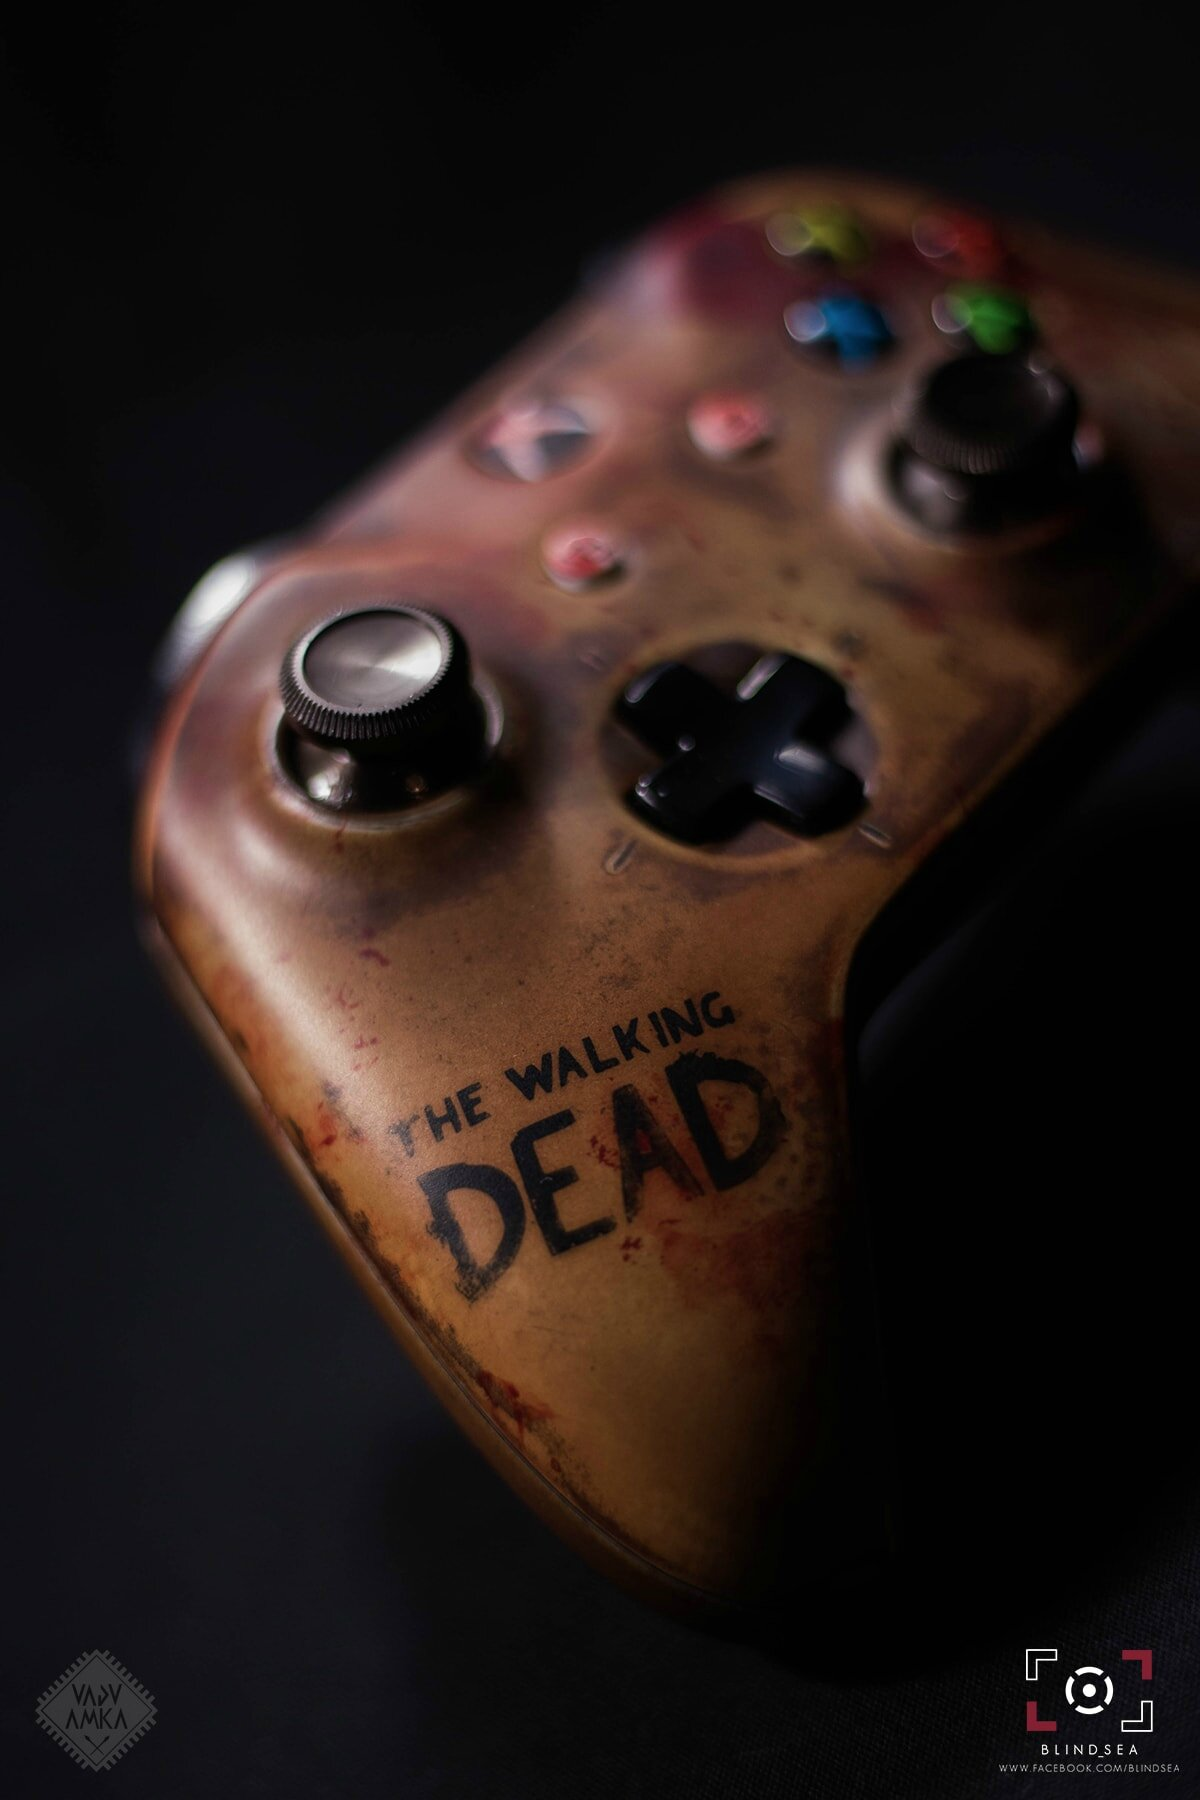 XBOX One The walking Dead Controller